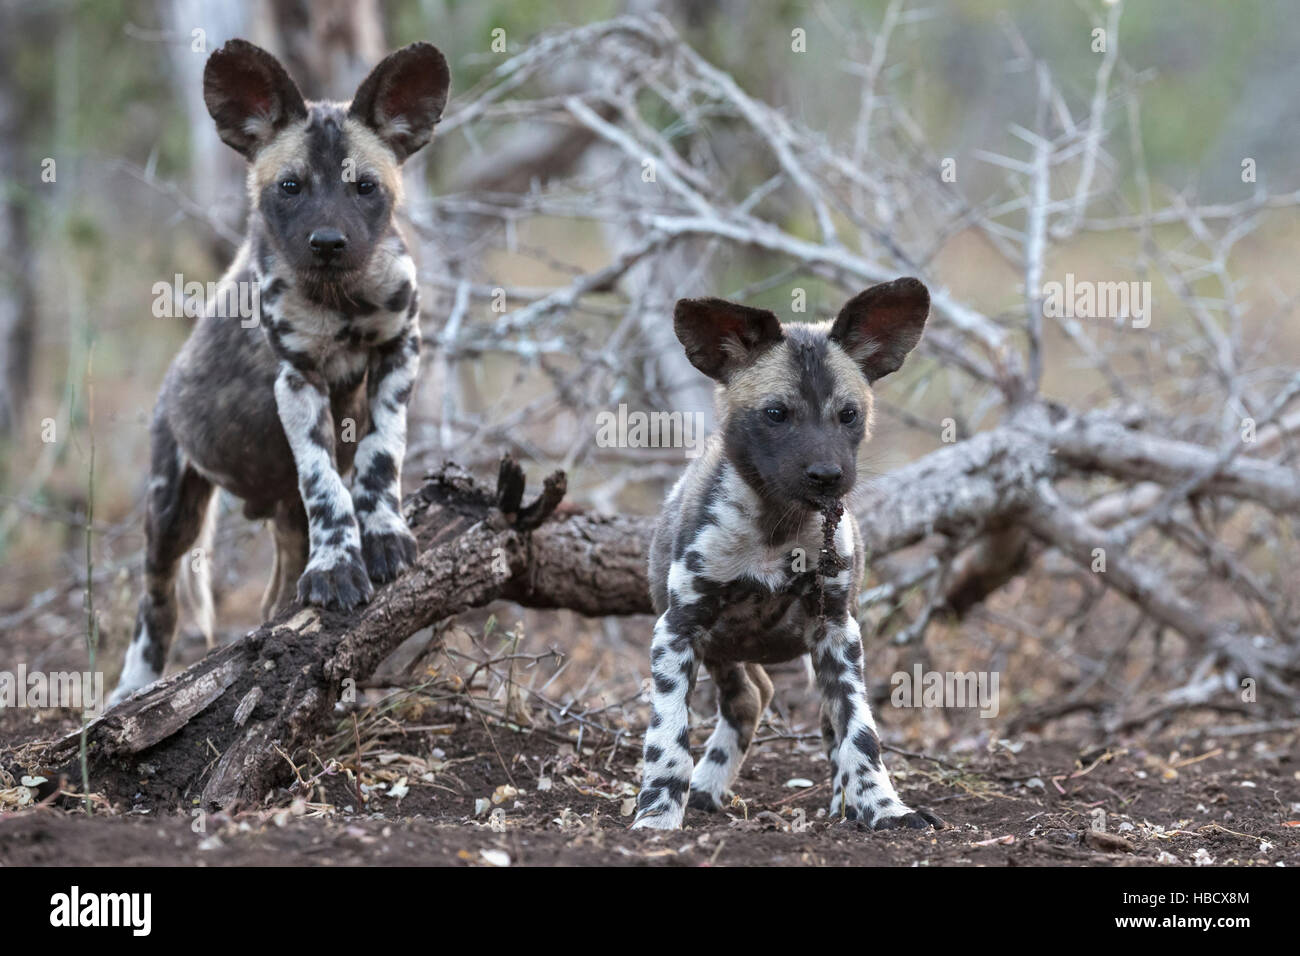 African wild dog pups (Lycaon pictus), Zimanga private game reserve, KwaZulu-Natal, South Africa - Stock Image